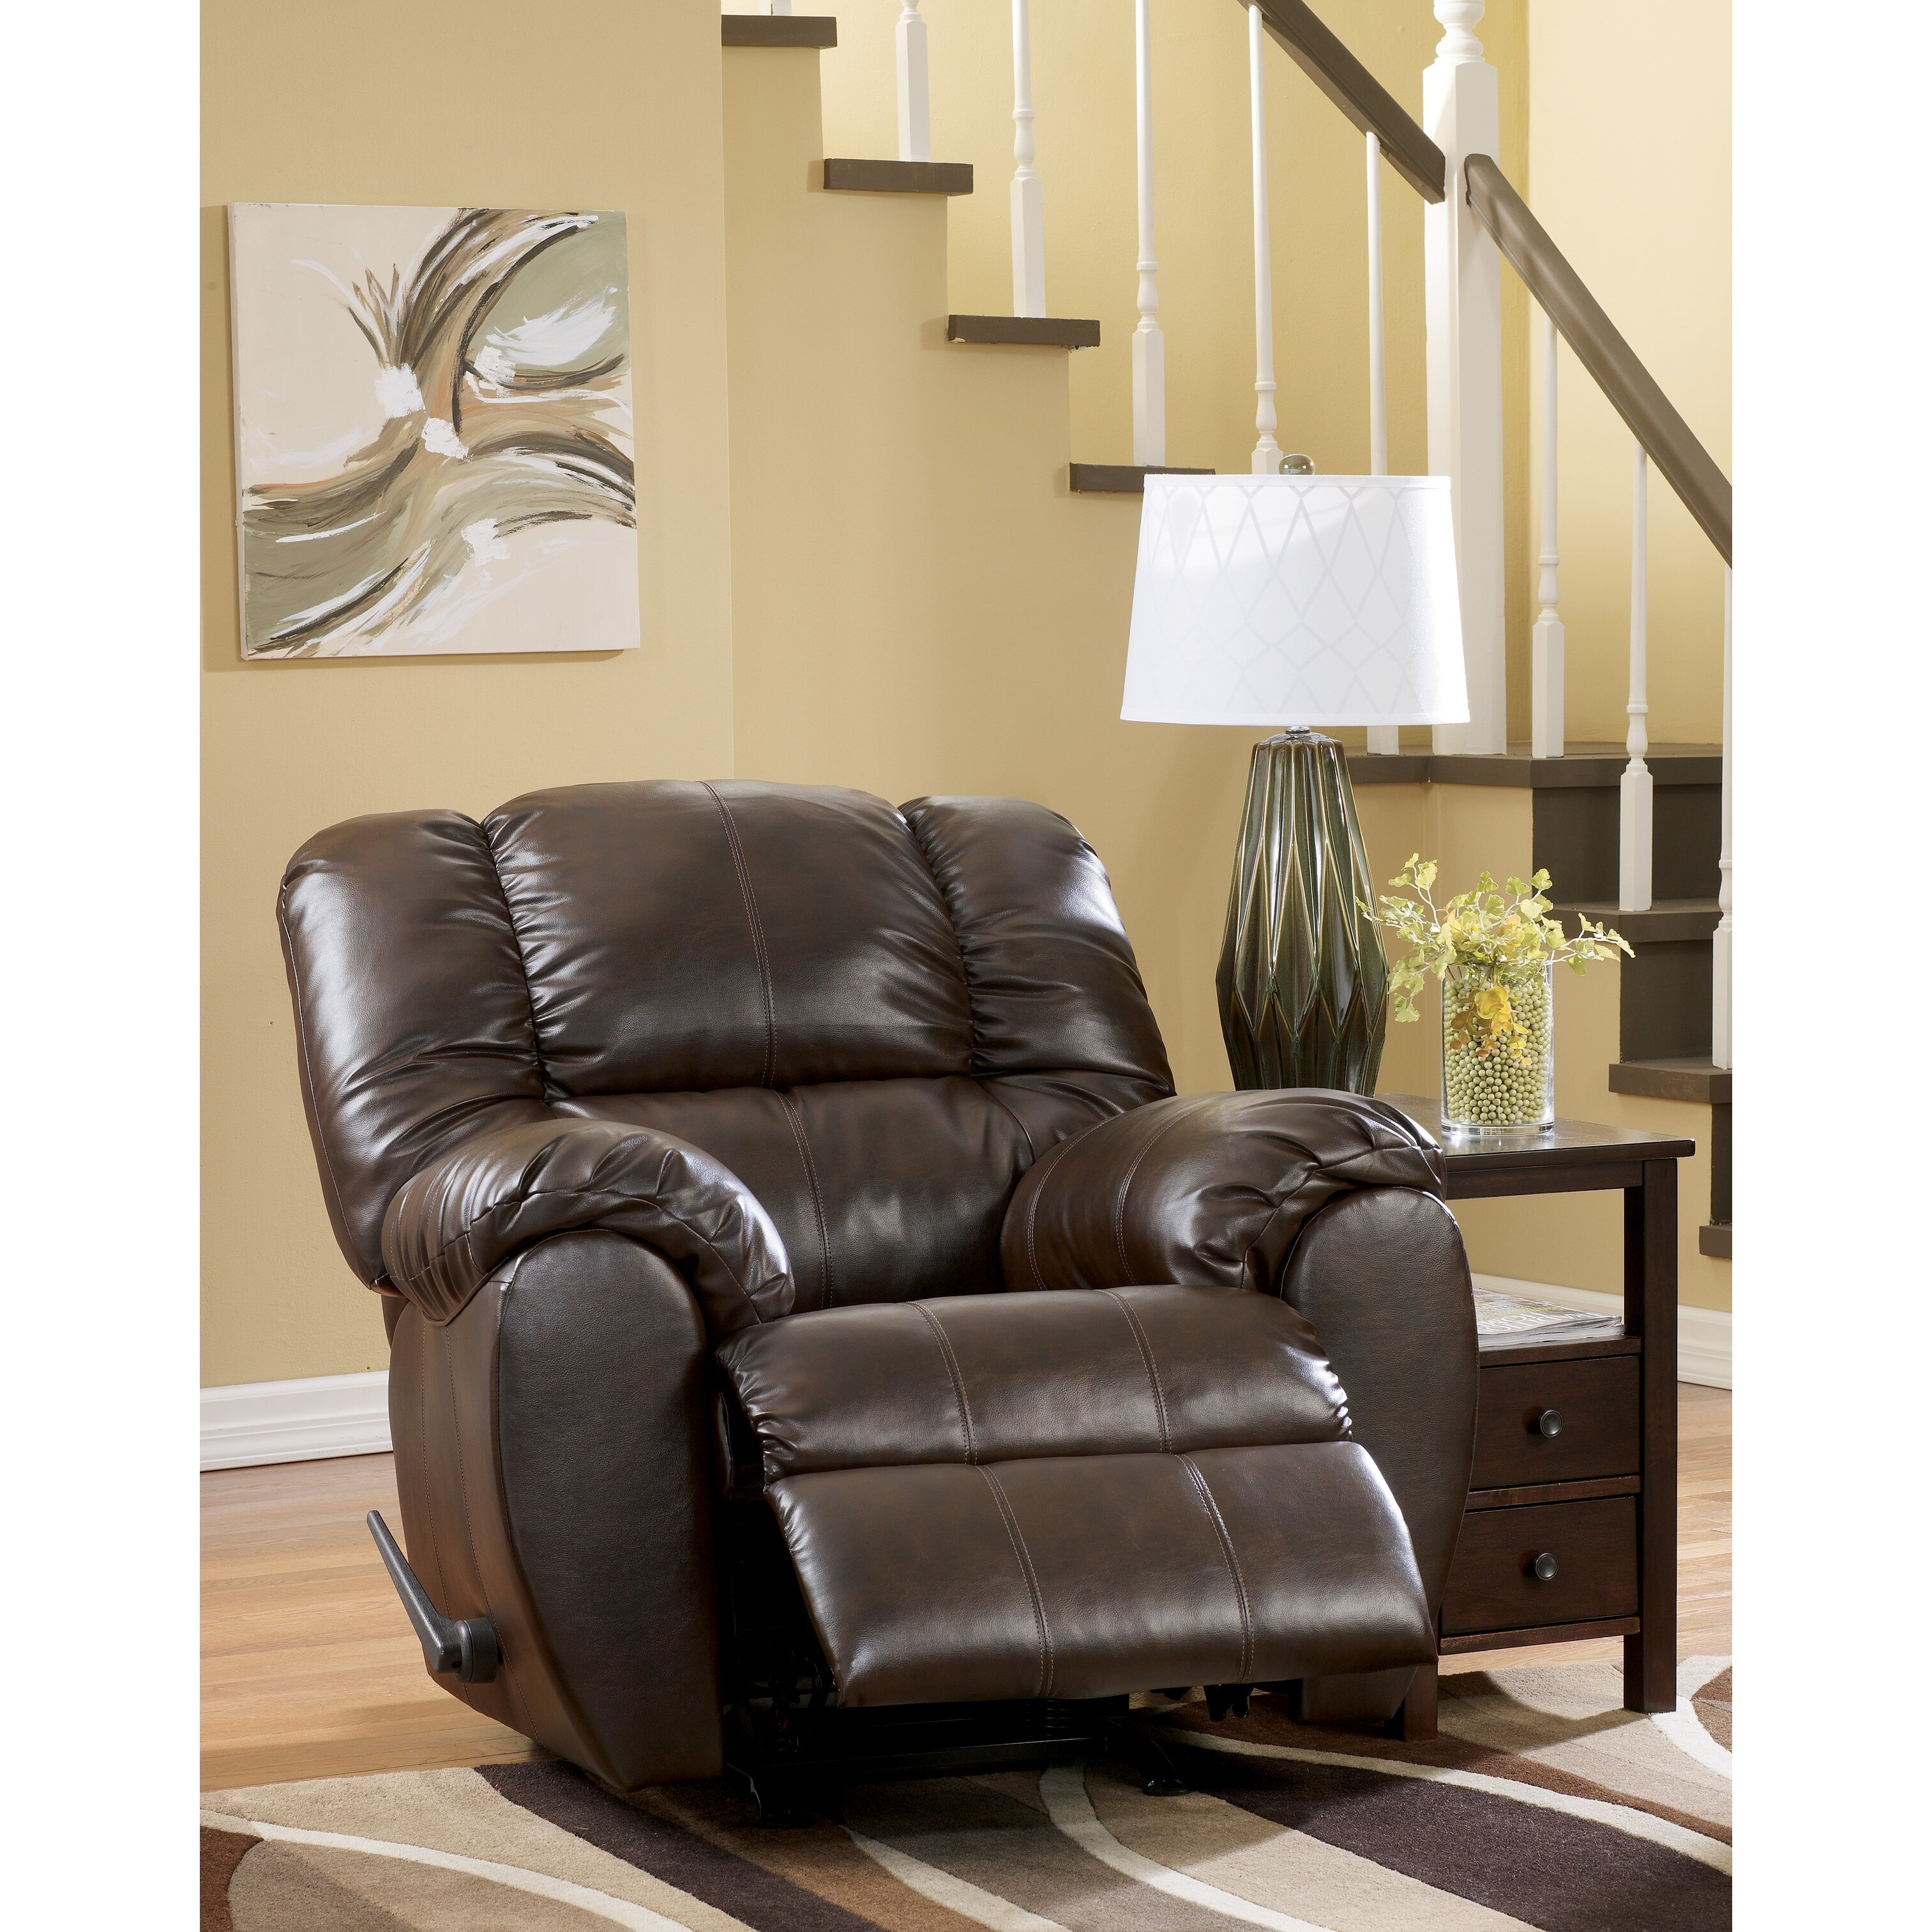 Signature design by ashley jack chaise recliner reviews for Ashley reclining chaise